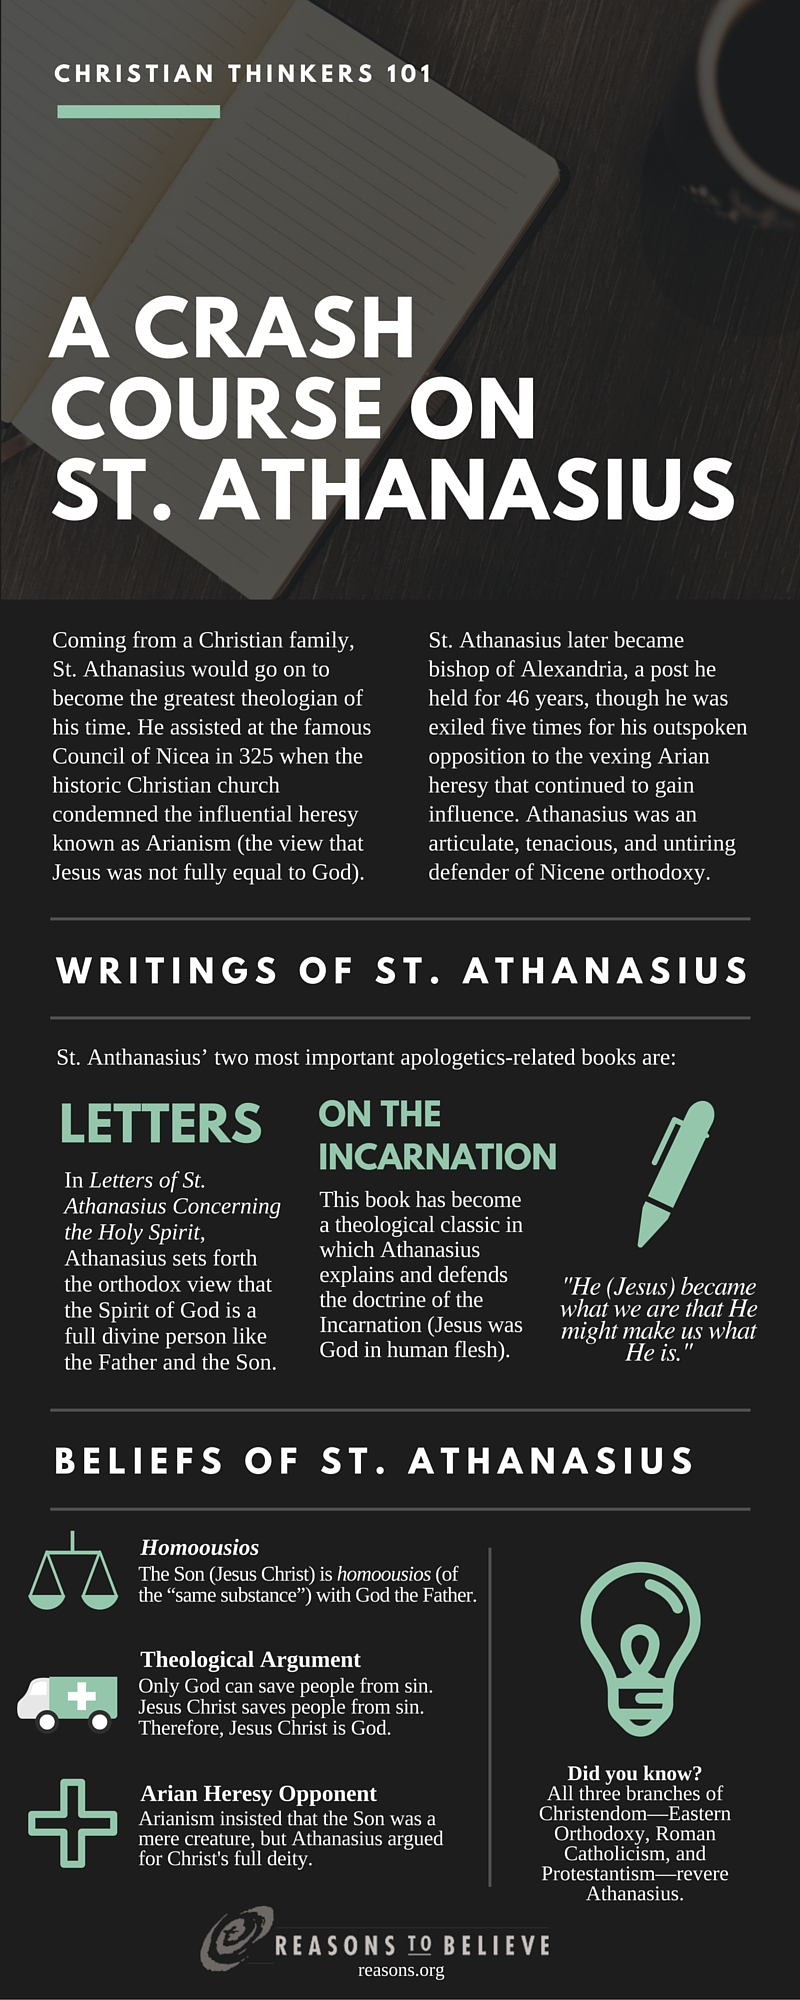 blog__inline—christian-thinkers-101-a-crash-course-on-st-athanasius